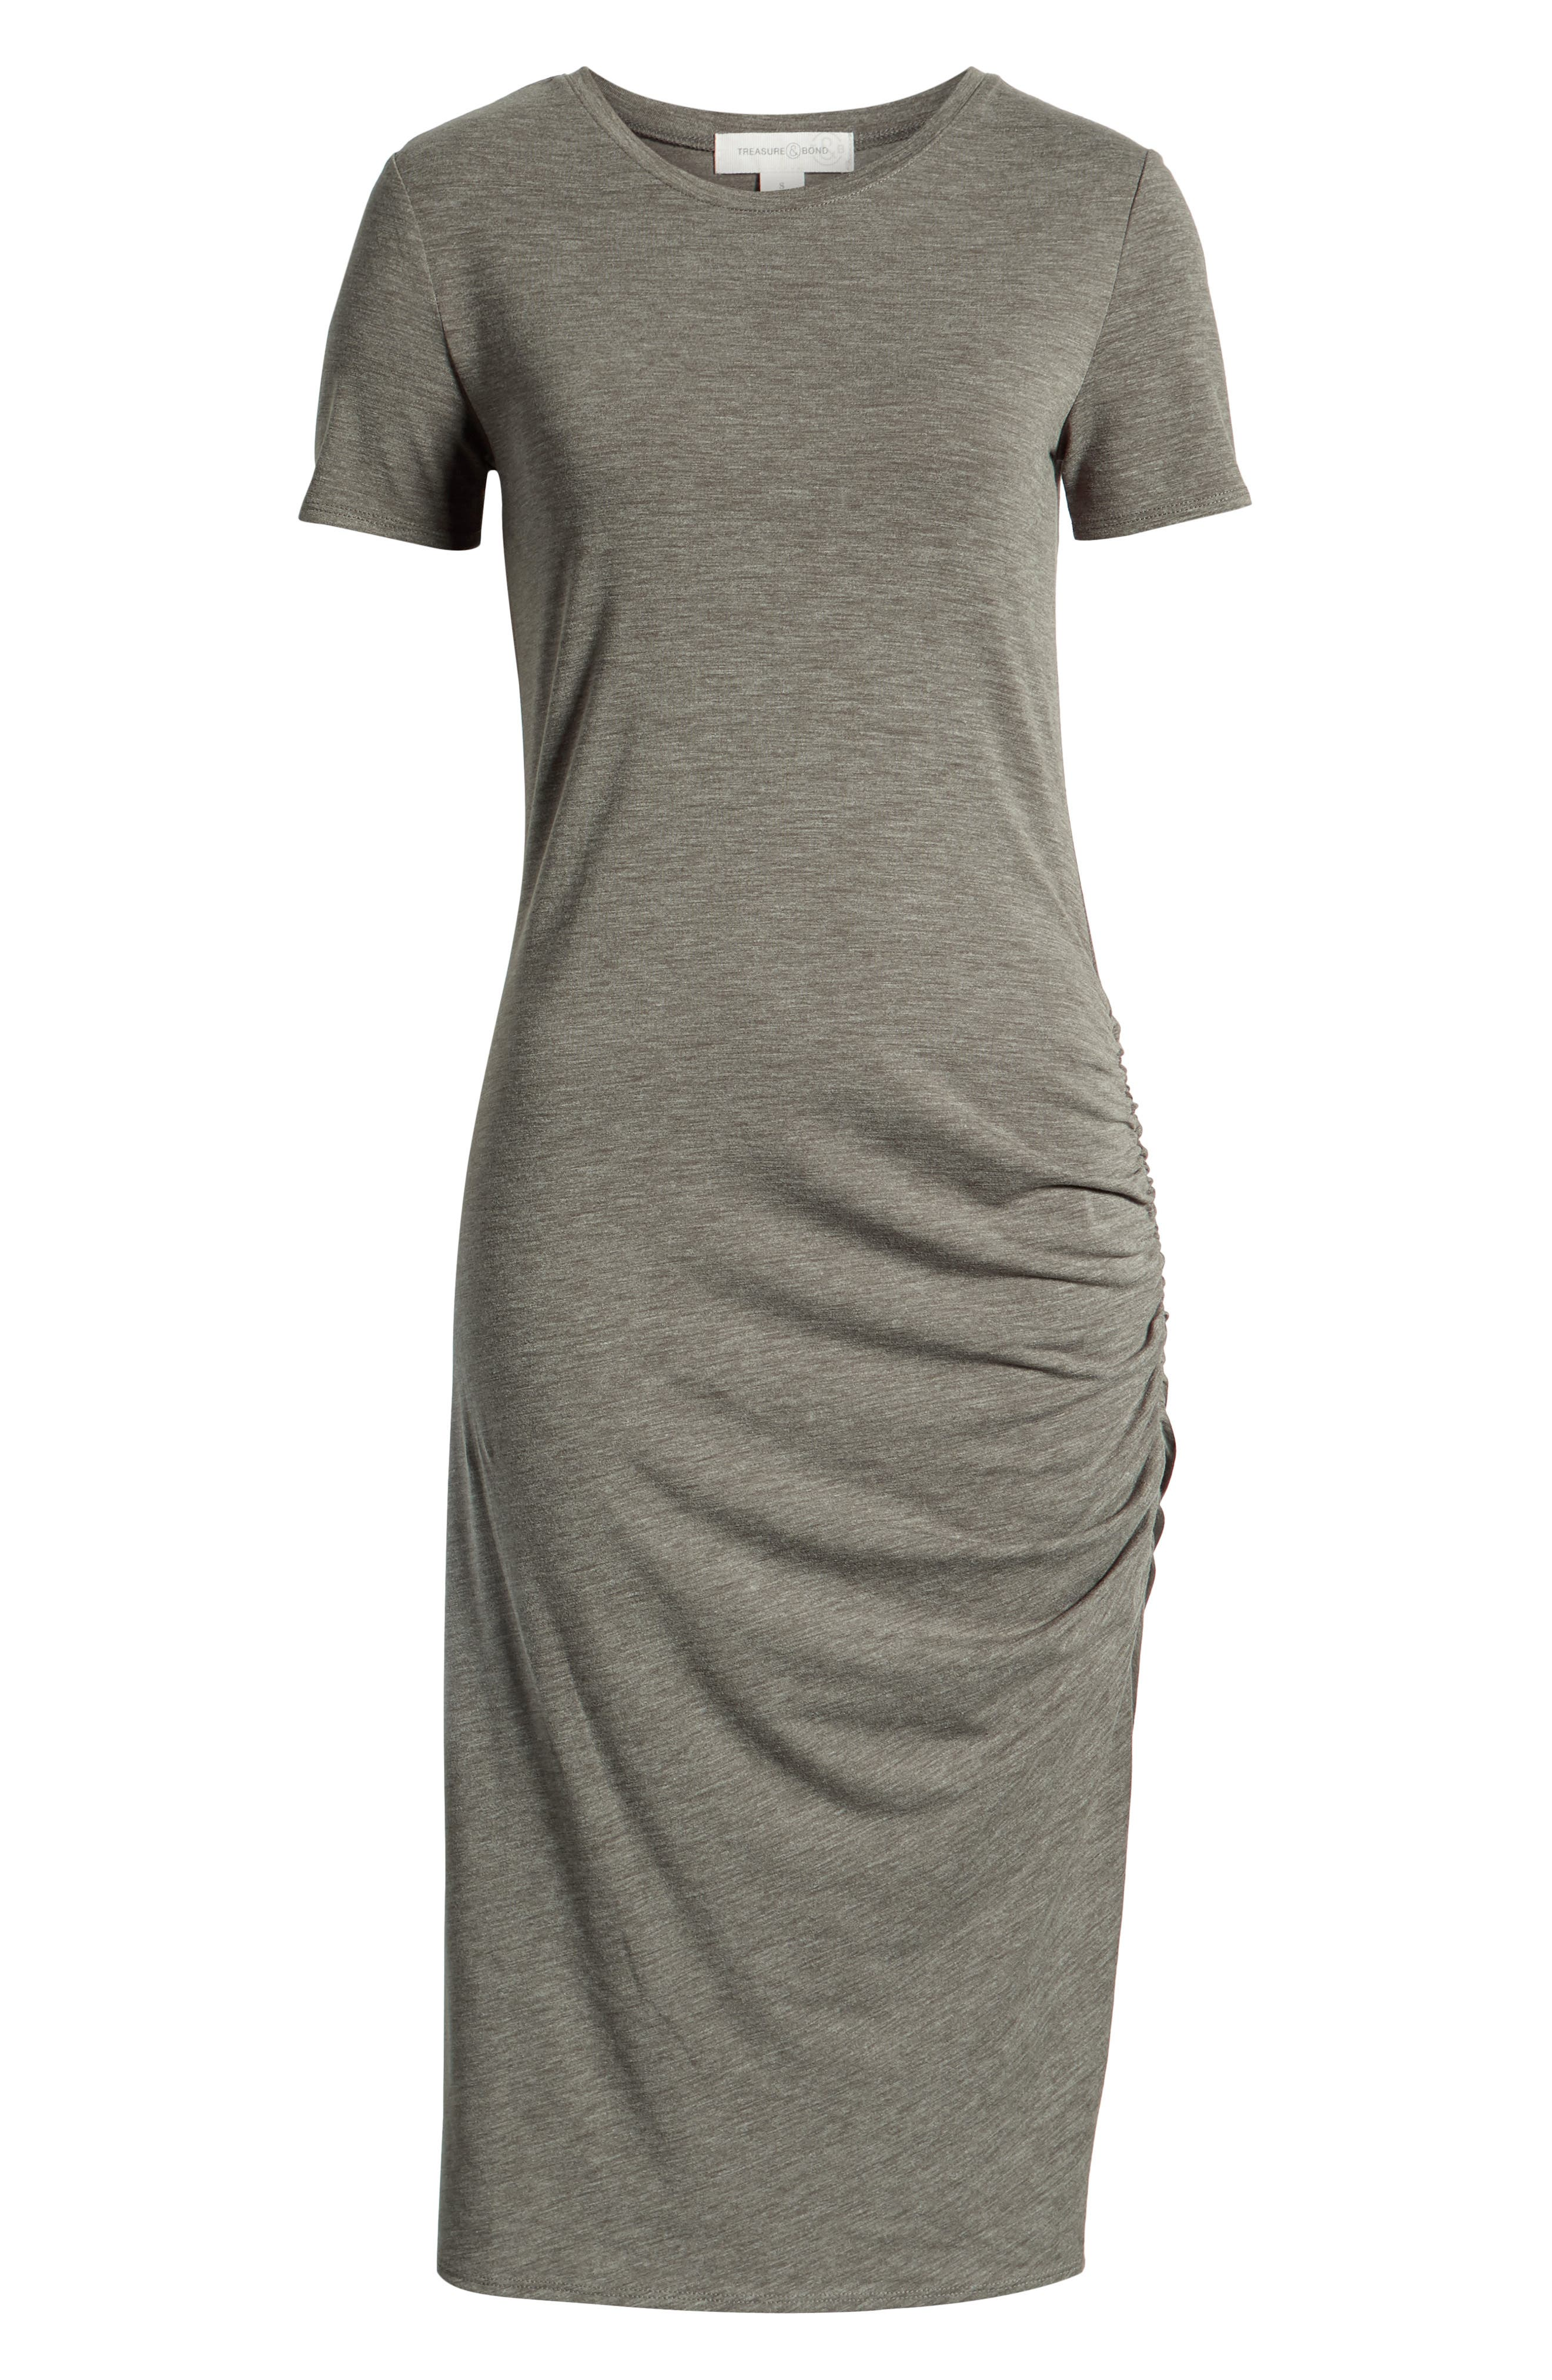 TREASURE & BOND, Side Ruched Body-Con Dress, Alternate thumbnail 8, color, OLIVE SARMA HEATHER